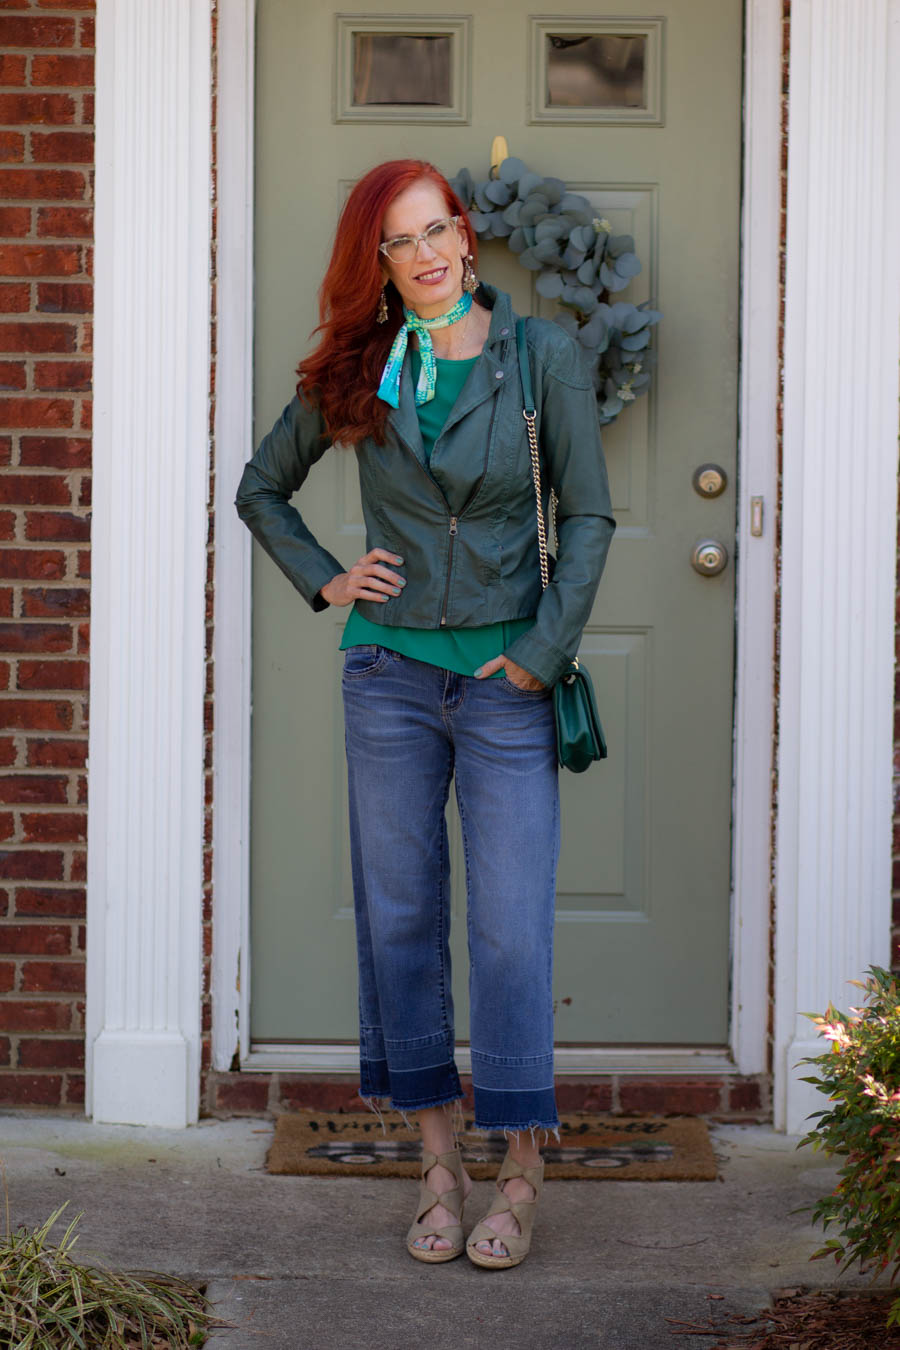 St Patty's Day outfit